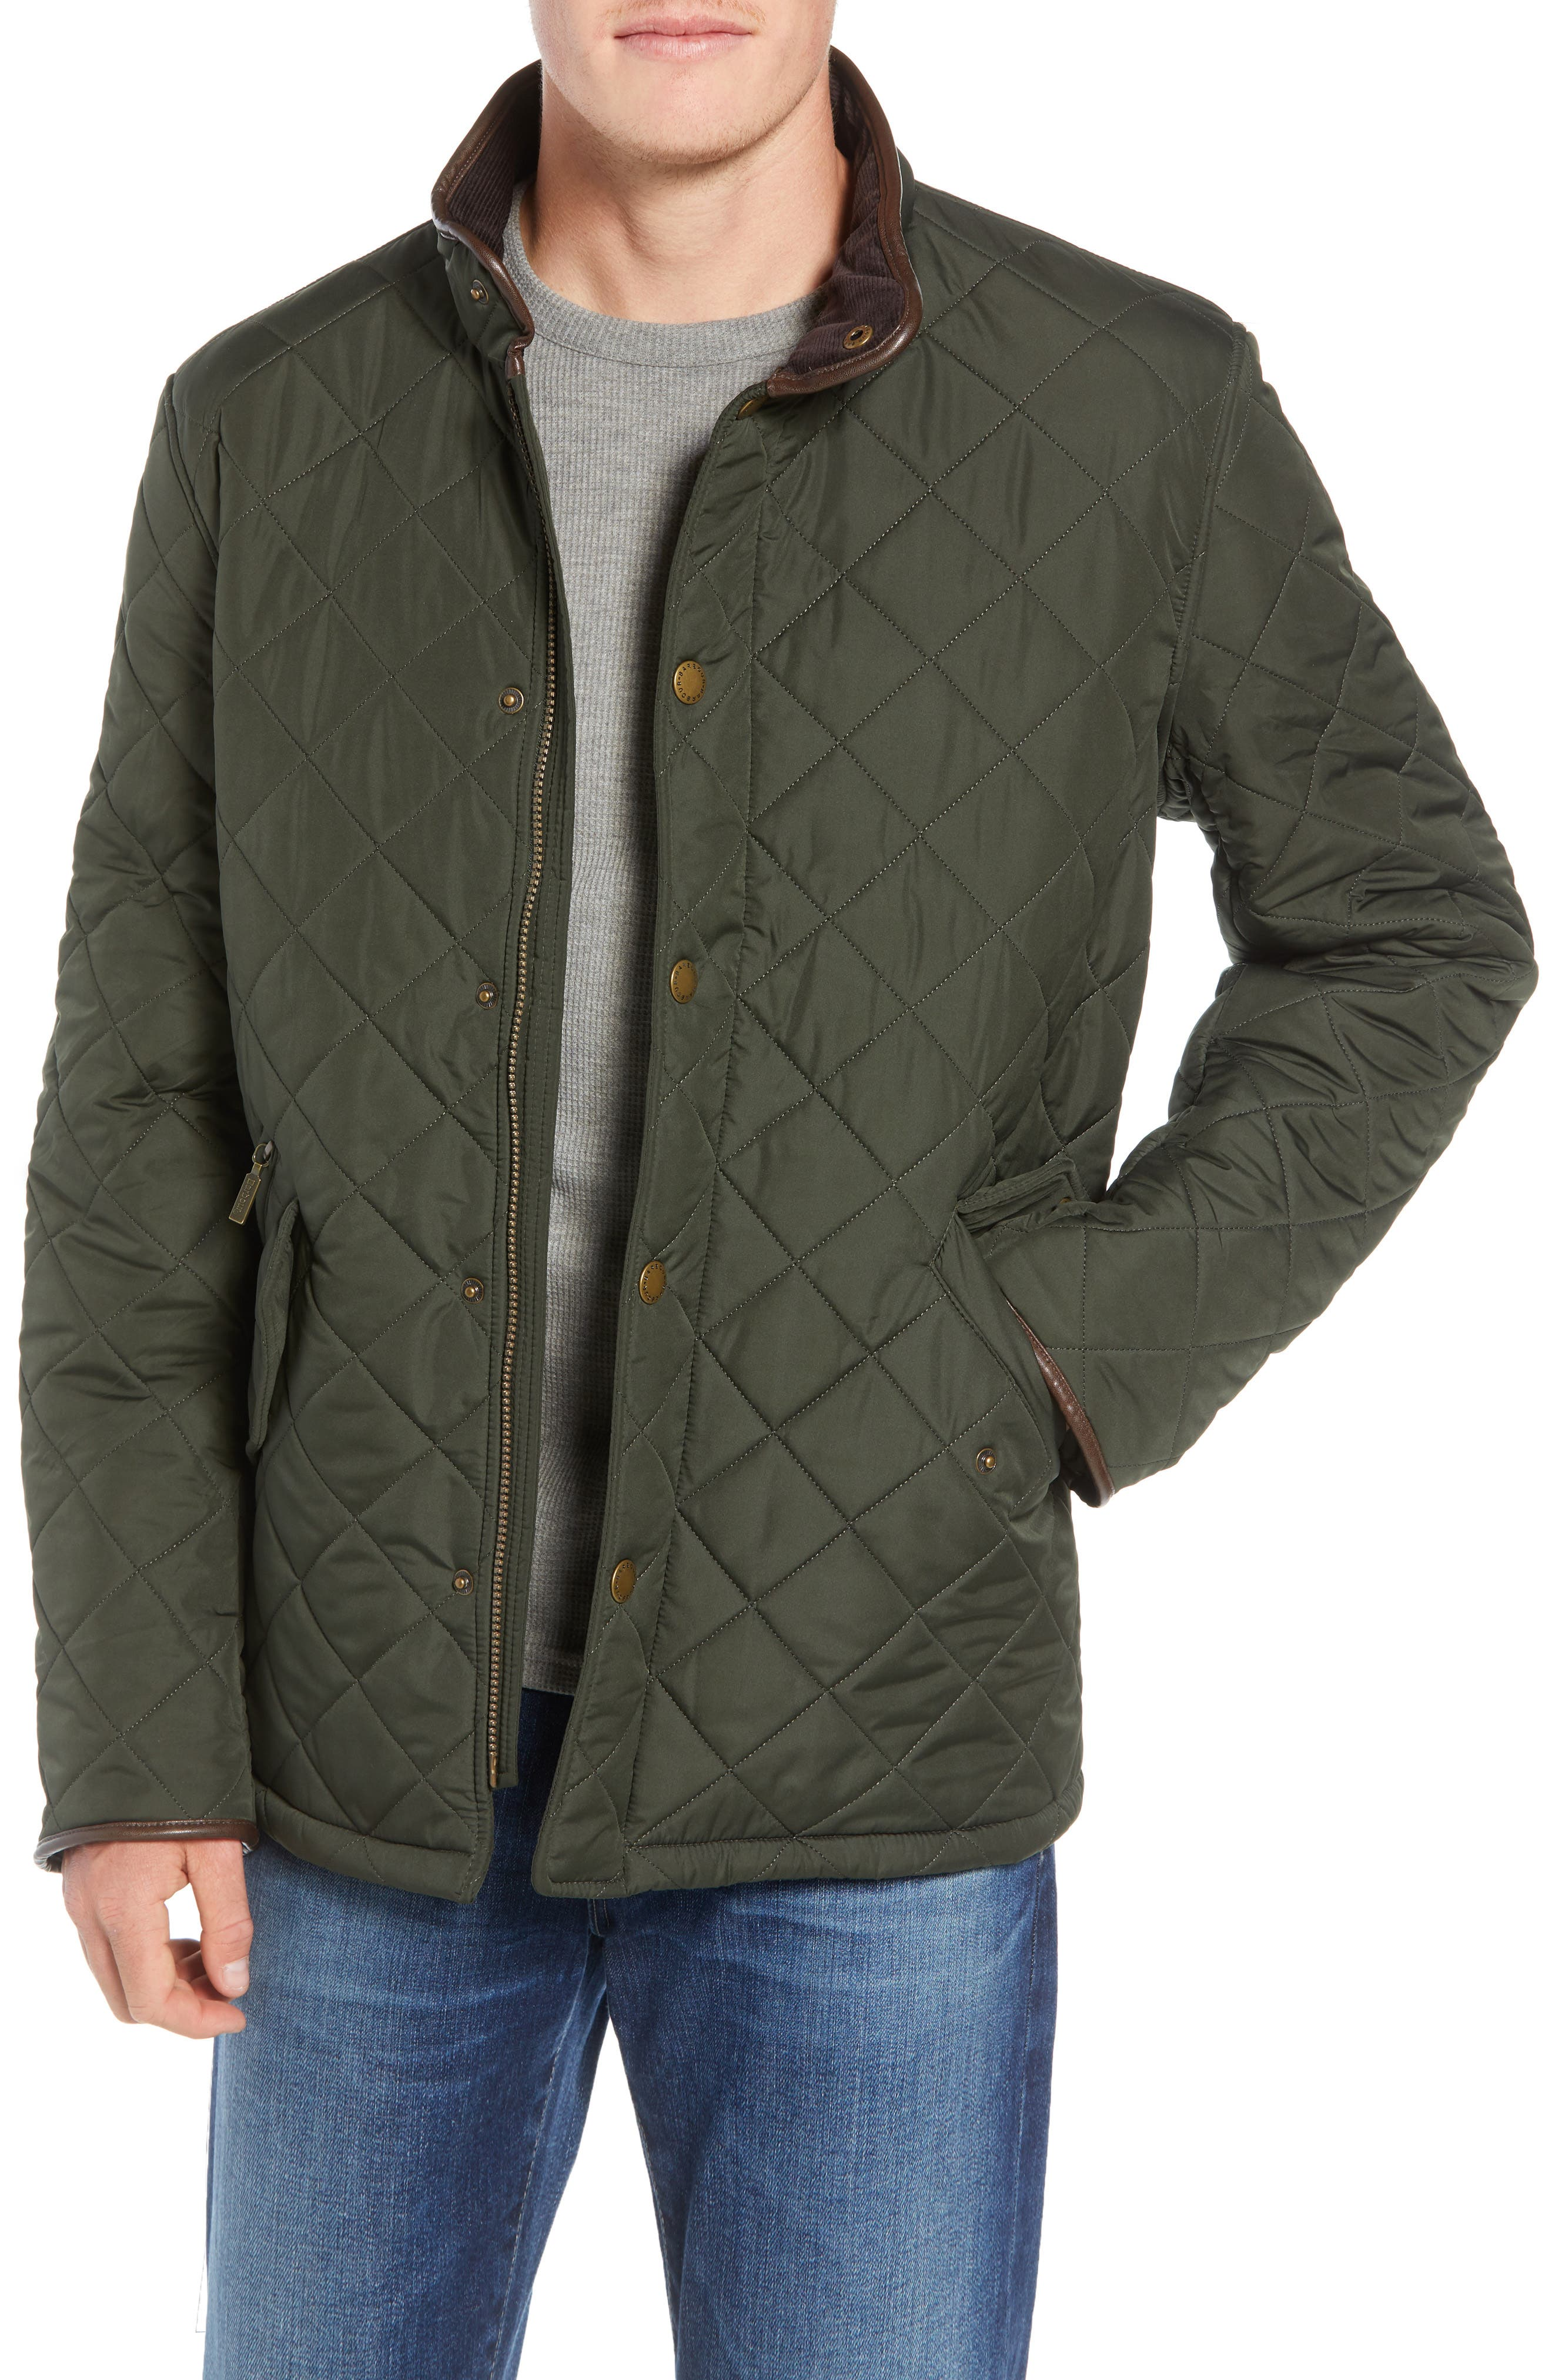 'Powell' Regular Fit Quilted Jacket,                             Main thumbnail 1, color,                             SAGE/ OLIVE